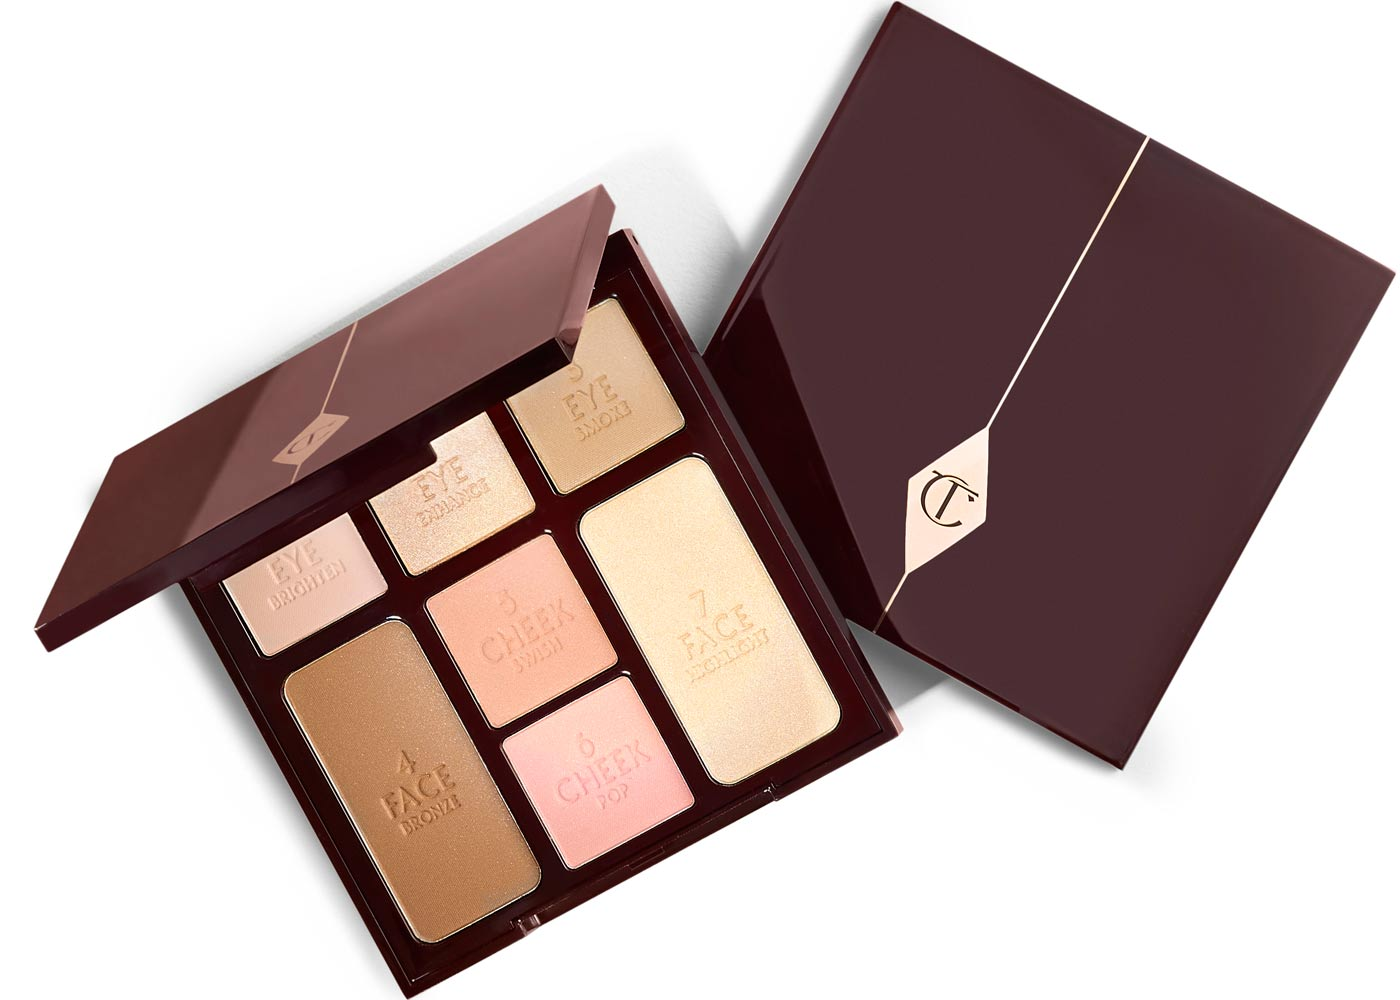 Instant-Look-in the palette